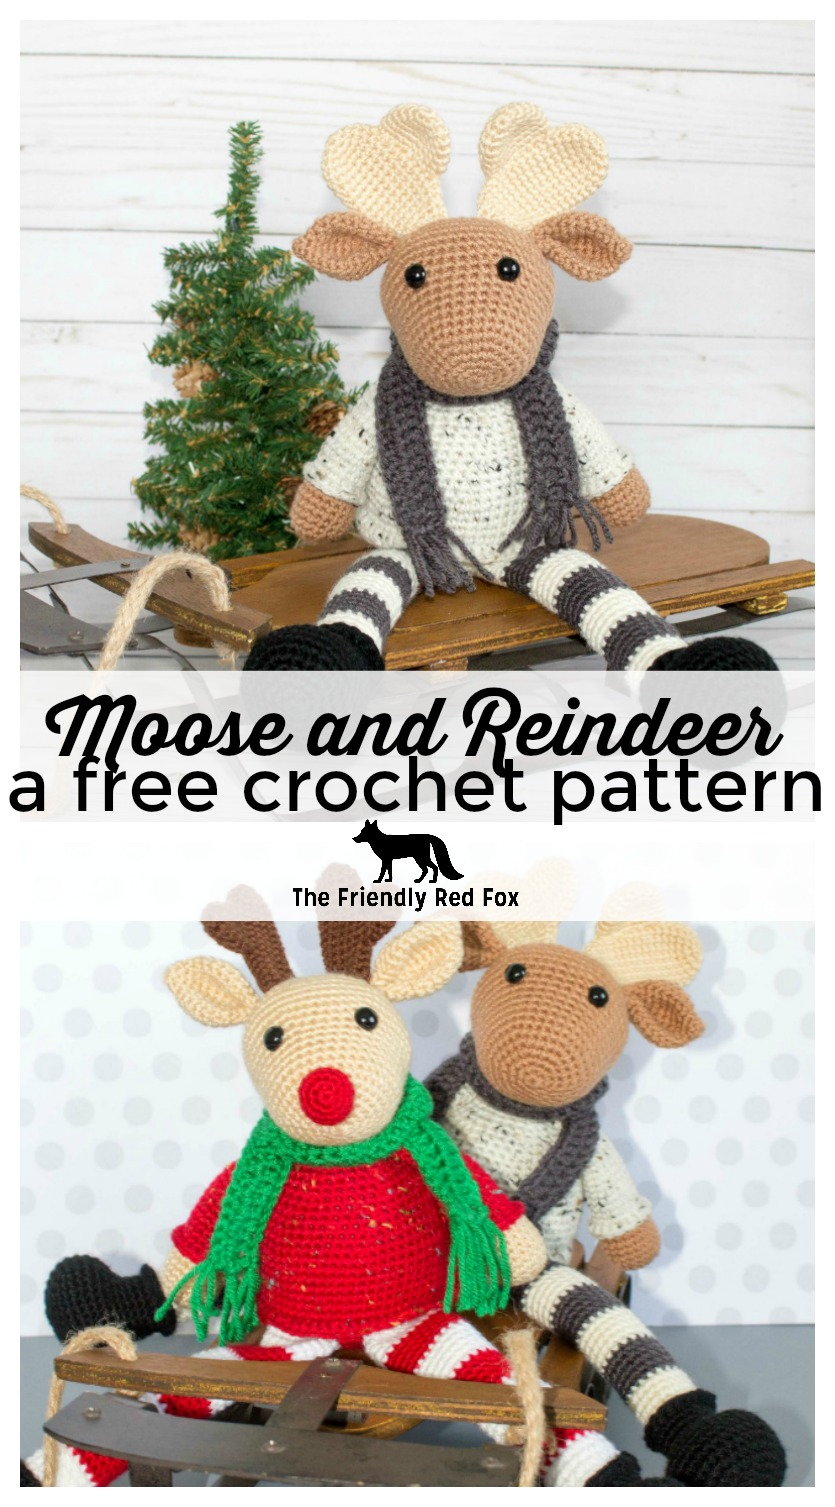 Free Crochet Moose and Crochet Reindeer Pattern.